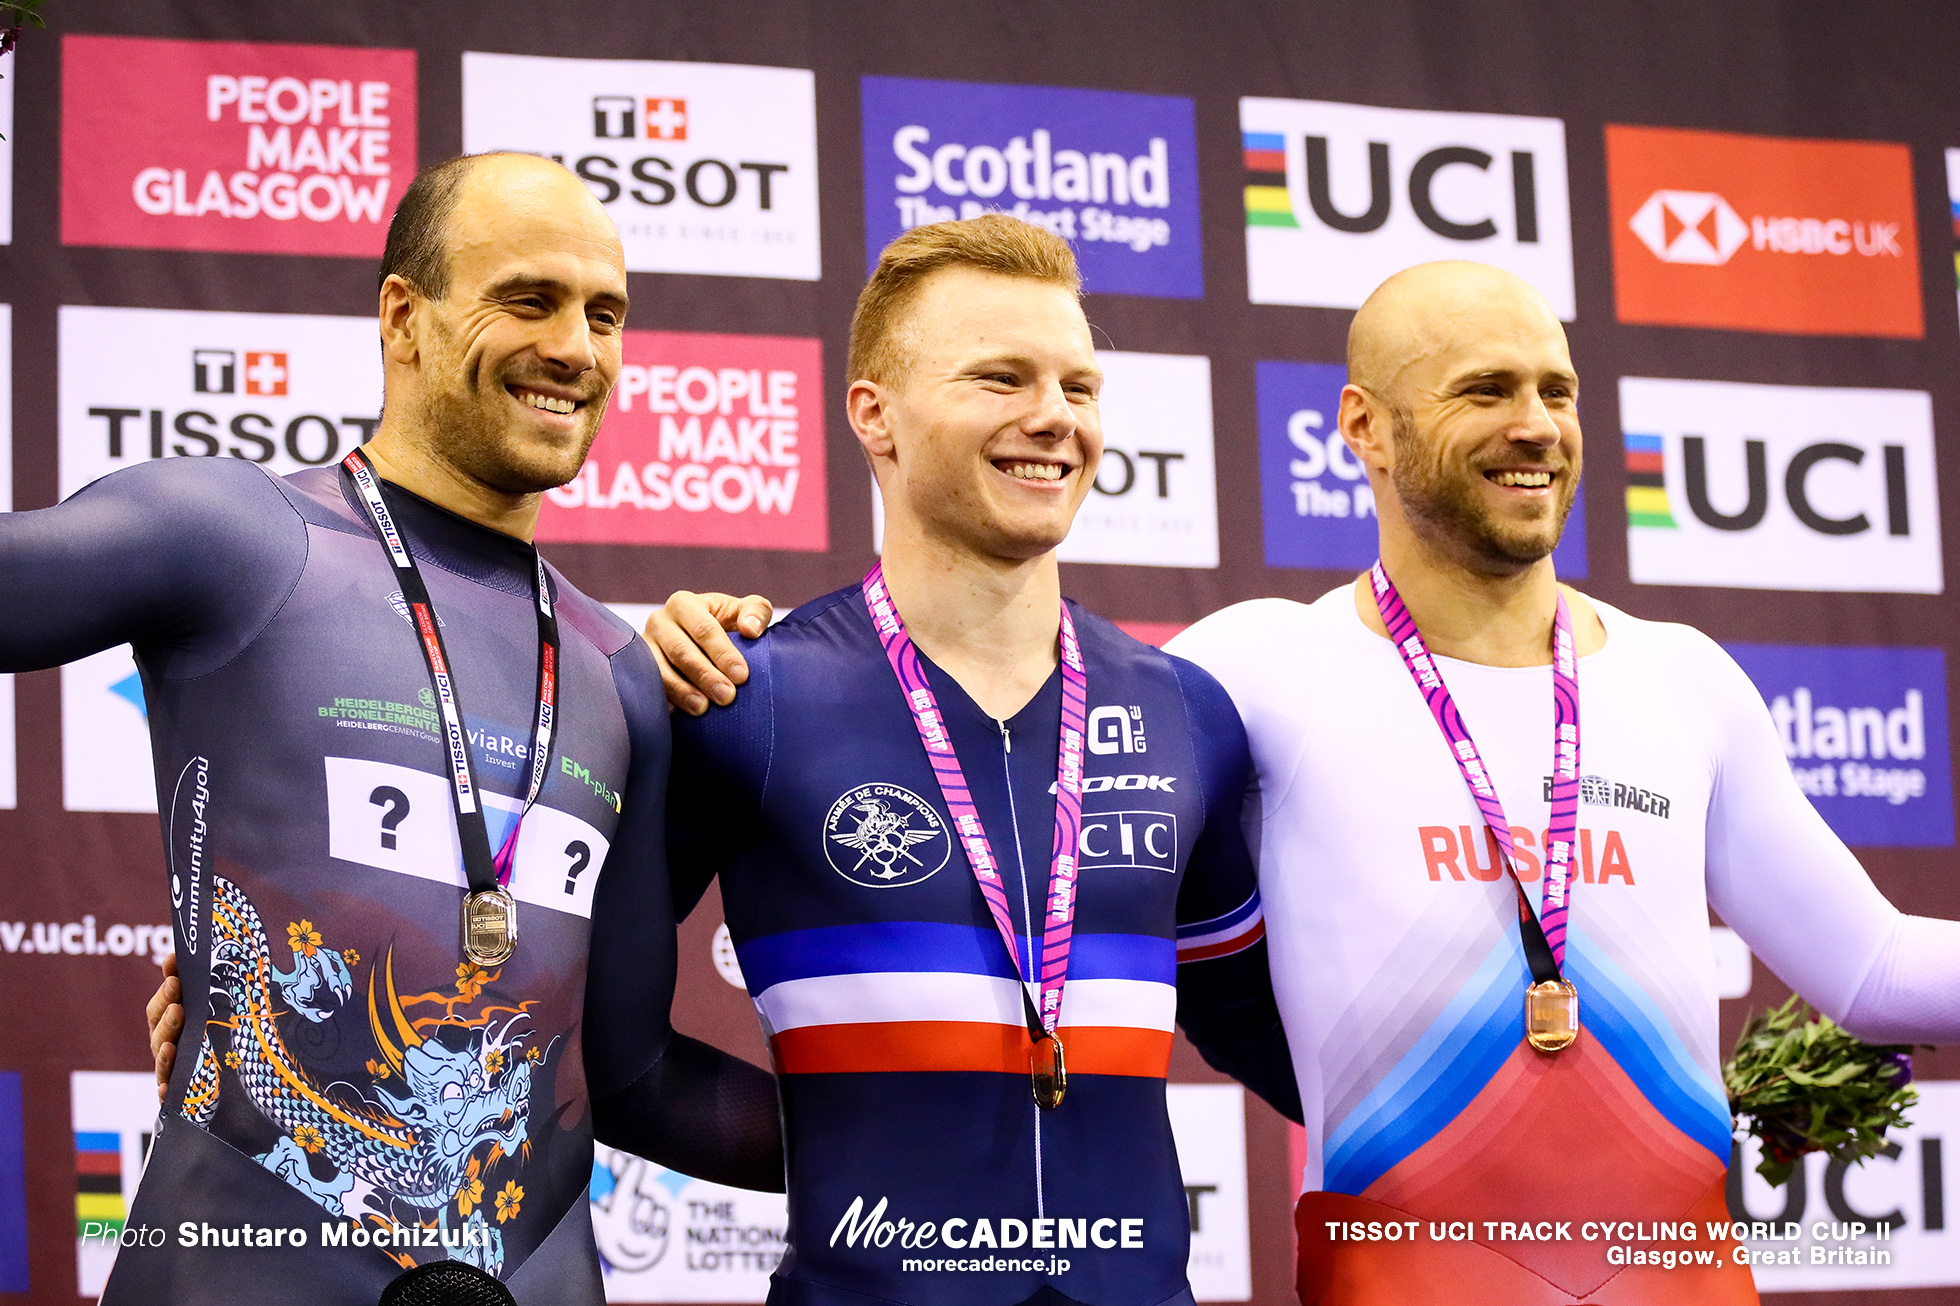 Final / Men's Keirin / TISSOT UCI TRACK CYCLING WORLD CUP II, Glasgow, Great Britain, Sébastien VIGIER セバスチャン・ビジエ Maximilian LEVY マキリミリアン・レビ Denis Dmitriev デニス・ドミトリエフ